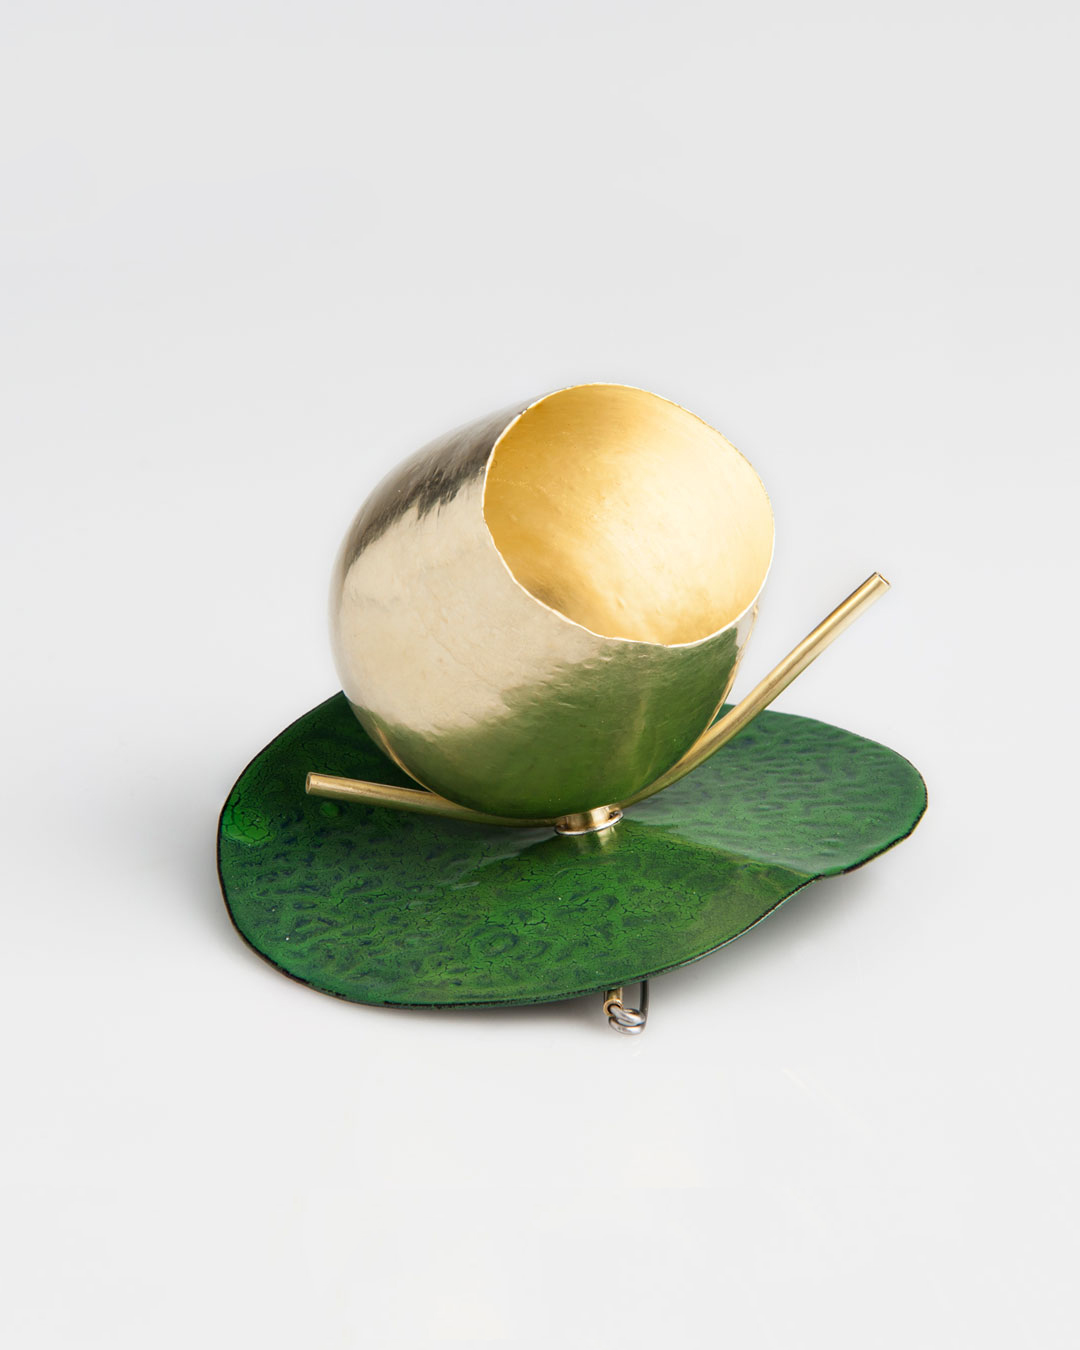 Andrea Wippermann, Blüte auf Grün (Bloom in Green), 2015, brooch; enamelled steel, gold, stainless steel, 80 x 75 x 60 mm, €5800